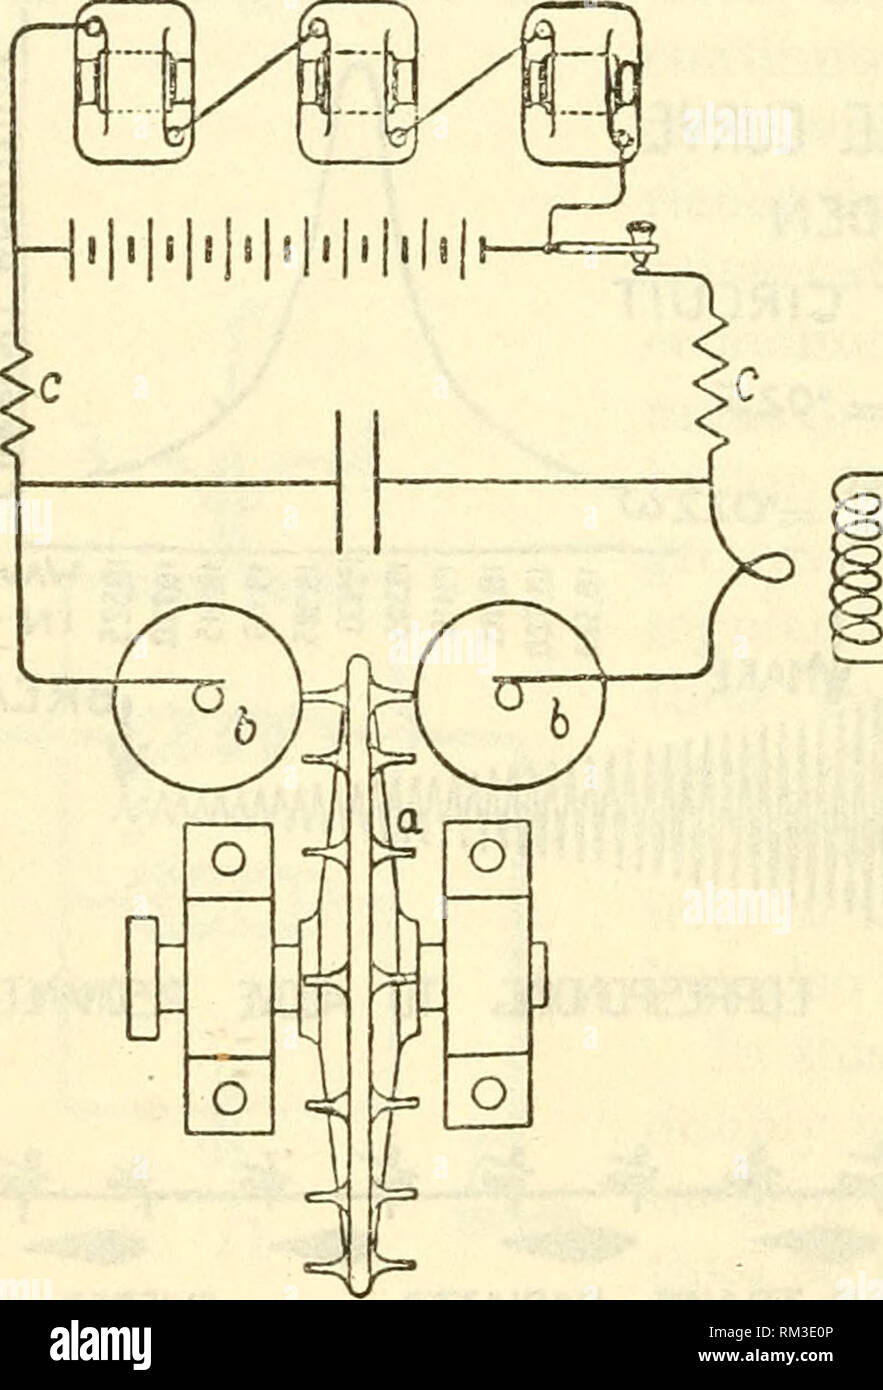 Gap An Antenna Wiring Diagram - Do you want to download ... Aerial Wiring Diagram on